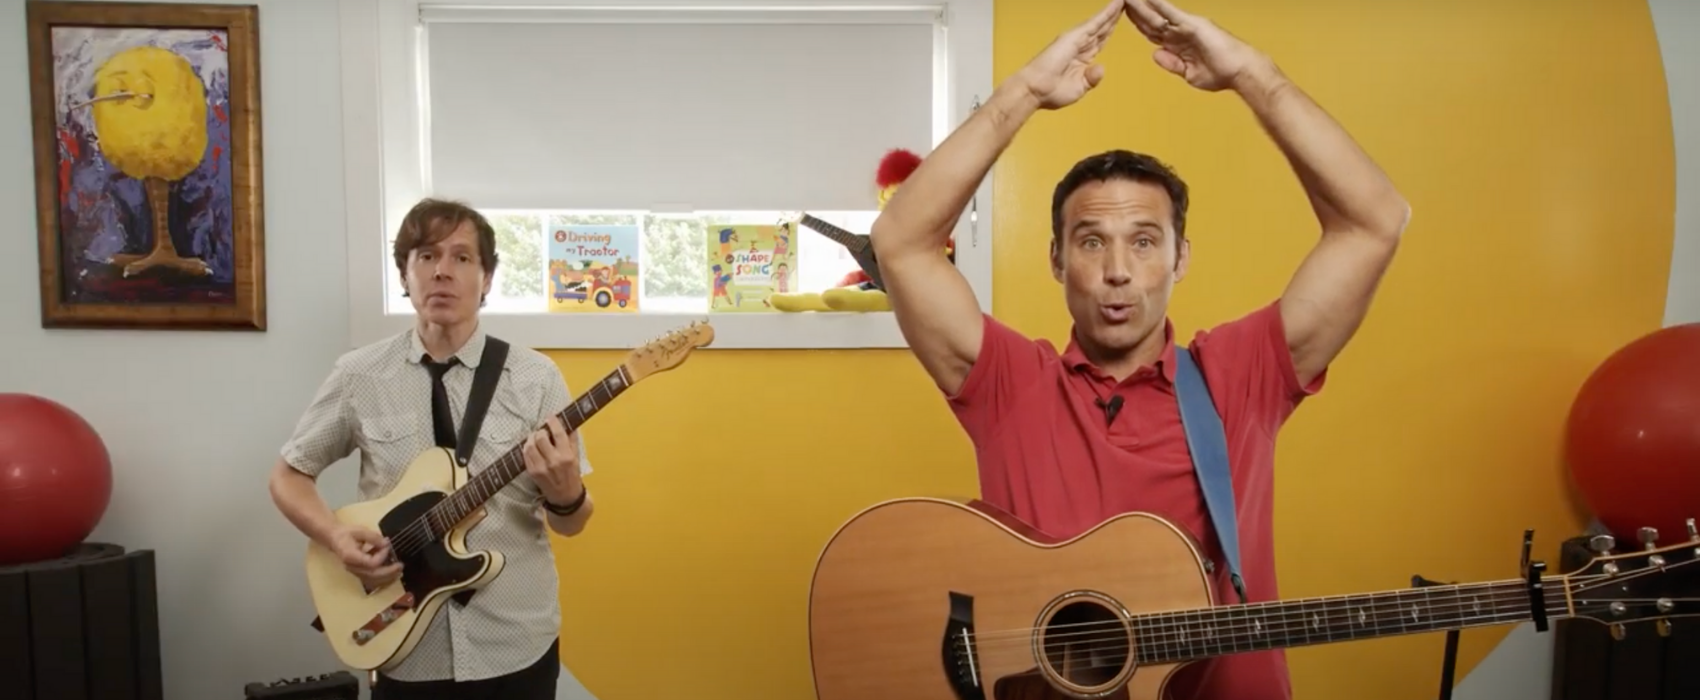 Sign up for free elementary music songs by PBS Kids celebrity SteveSongs